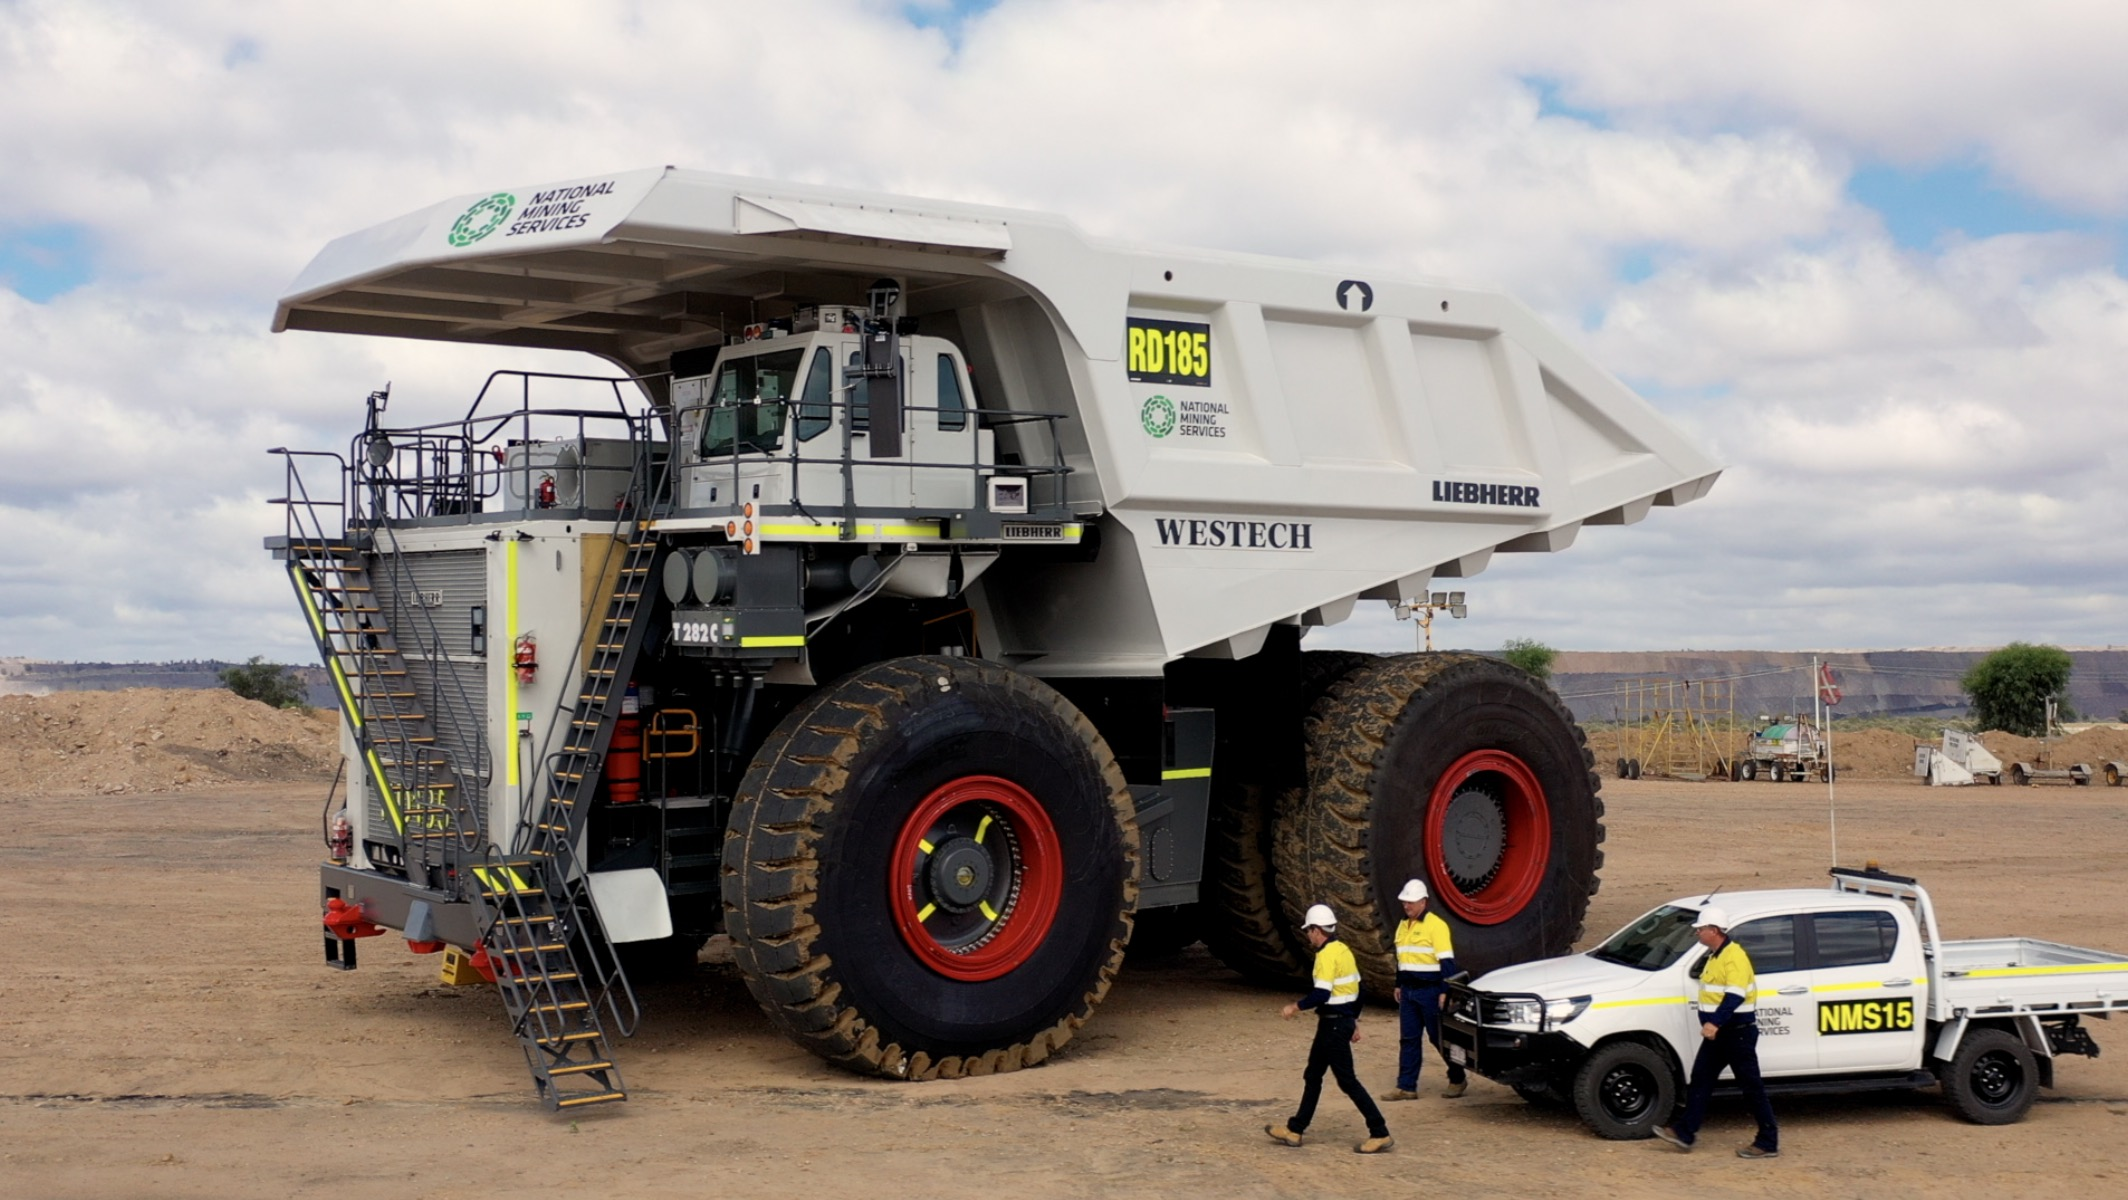 The World's Second Largest Mining Trucks